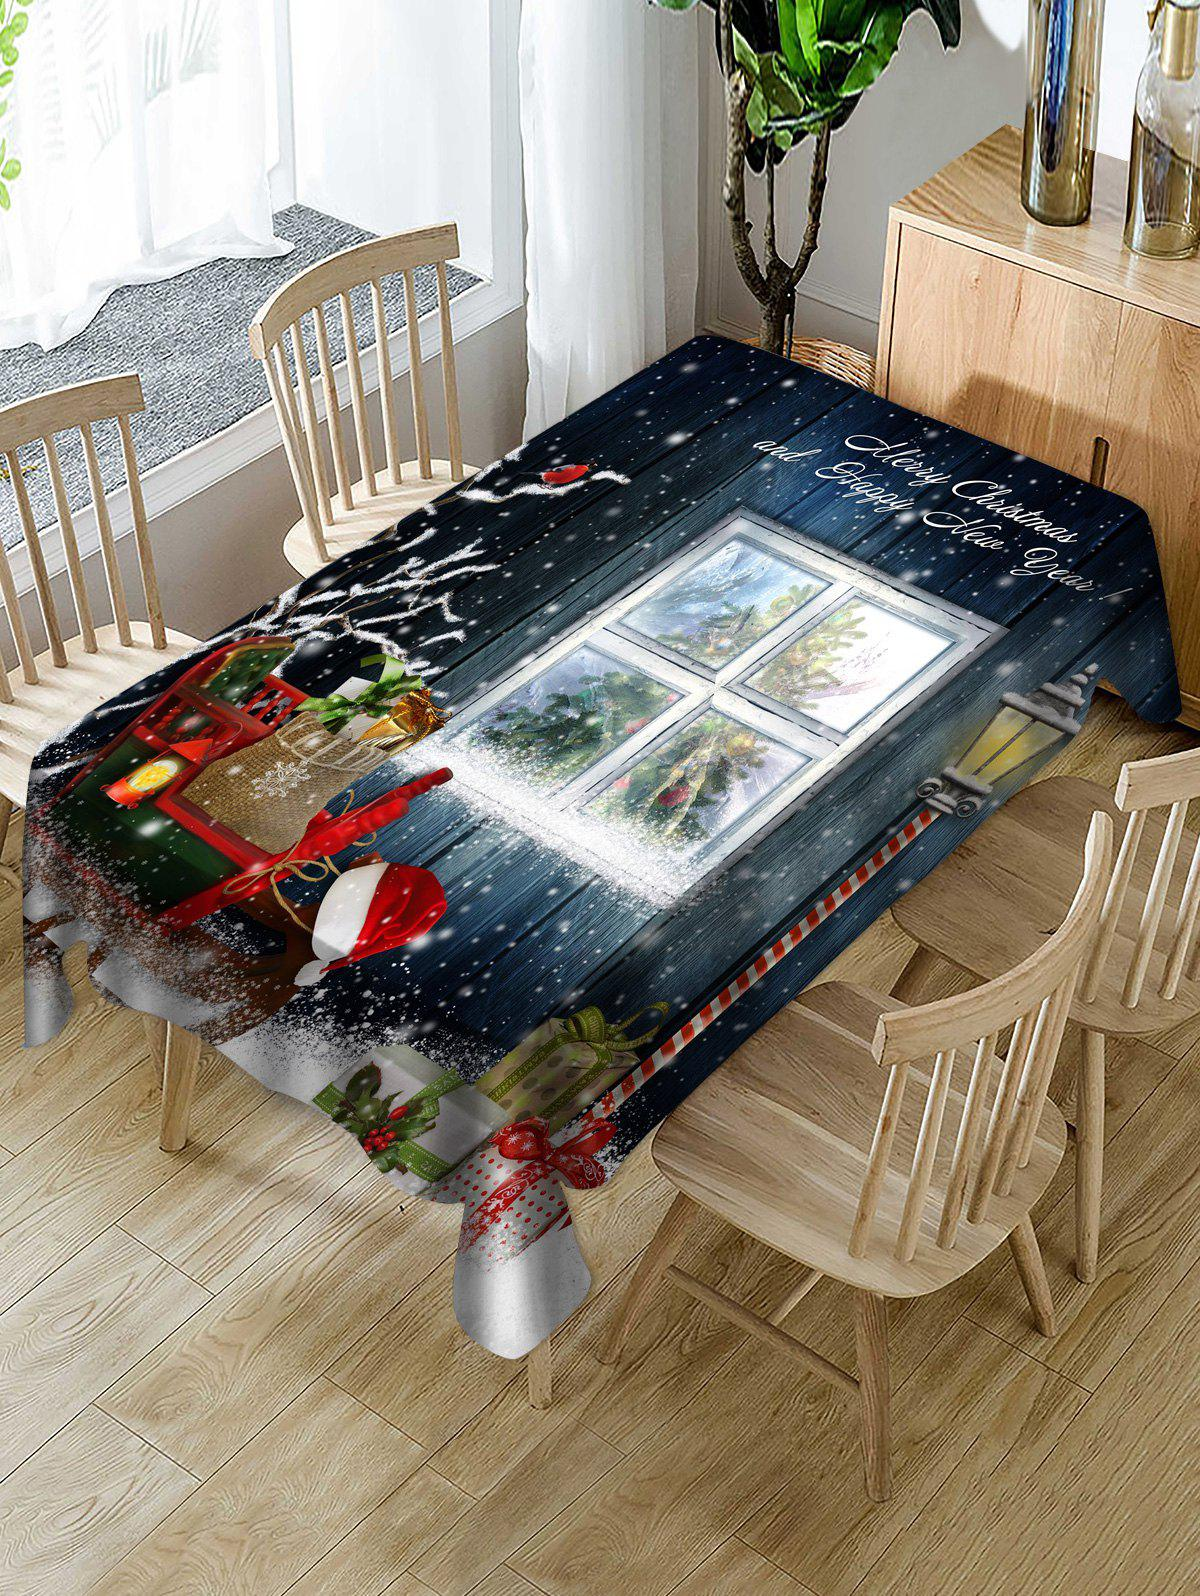 Shop Christmas House Window Print Fabric Waterproof Tablecloth